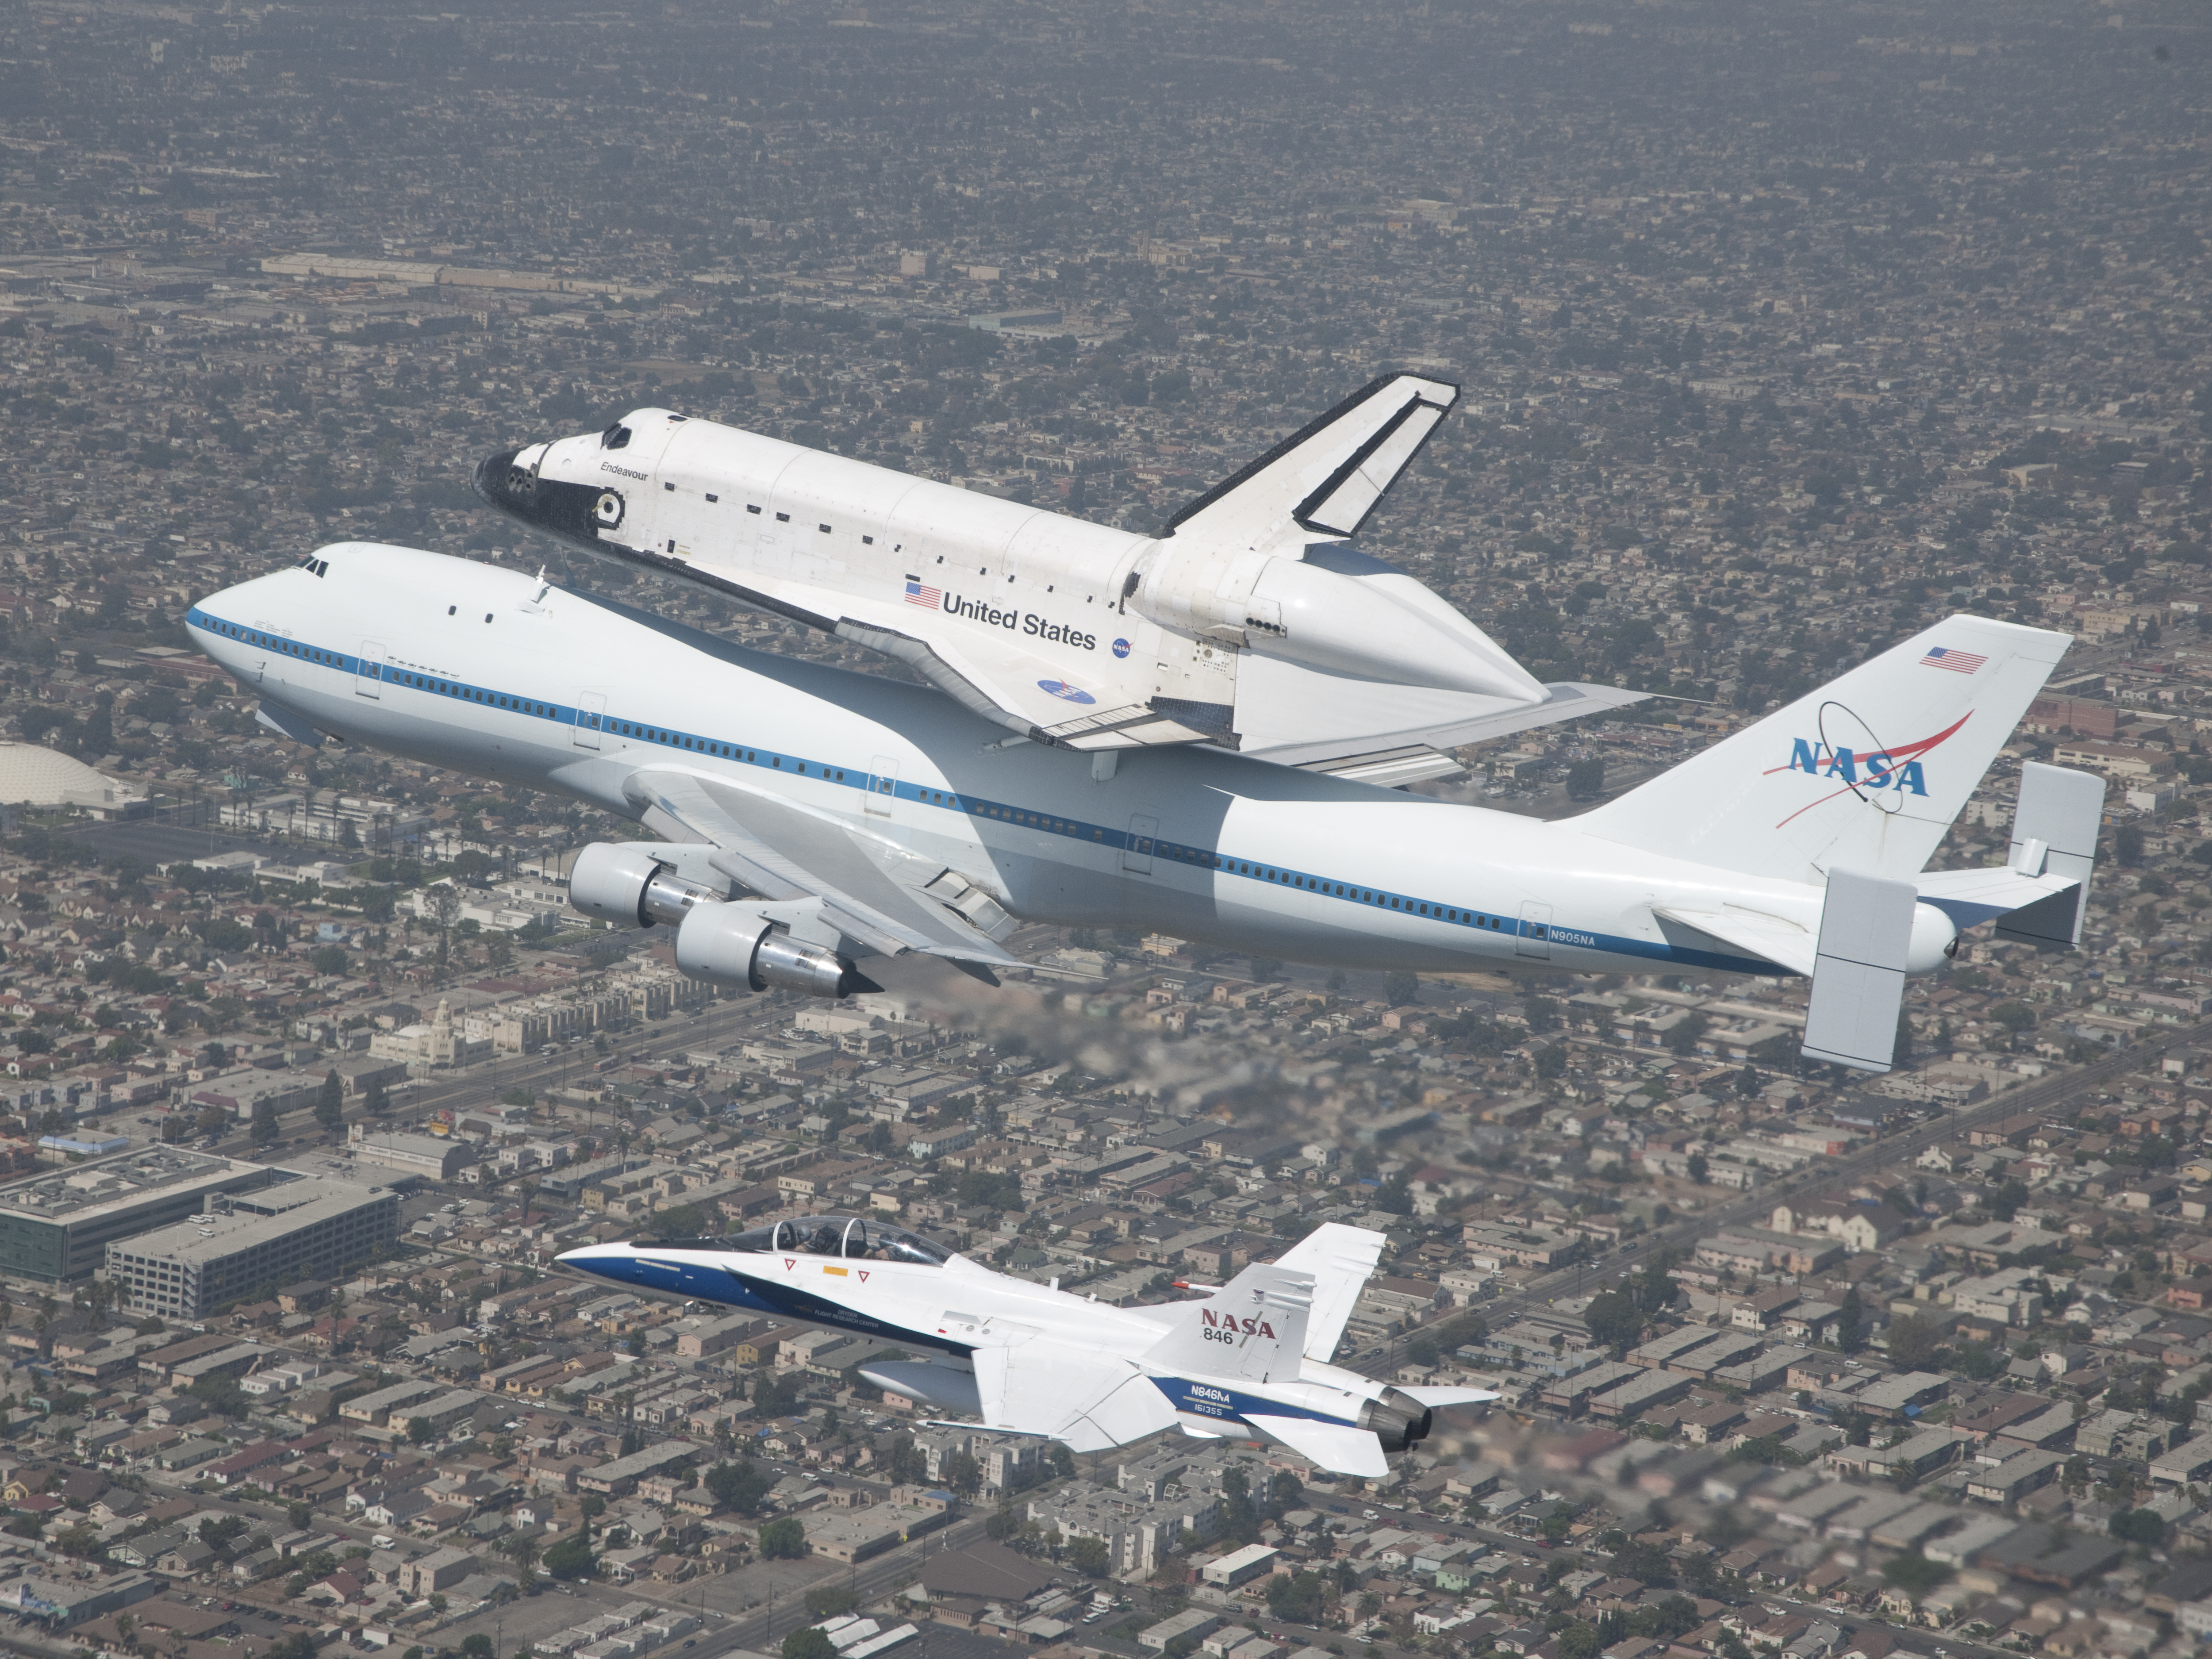 File:SCA and Endeavour escorted by FA-18, on approach to LAX (ED12 ...